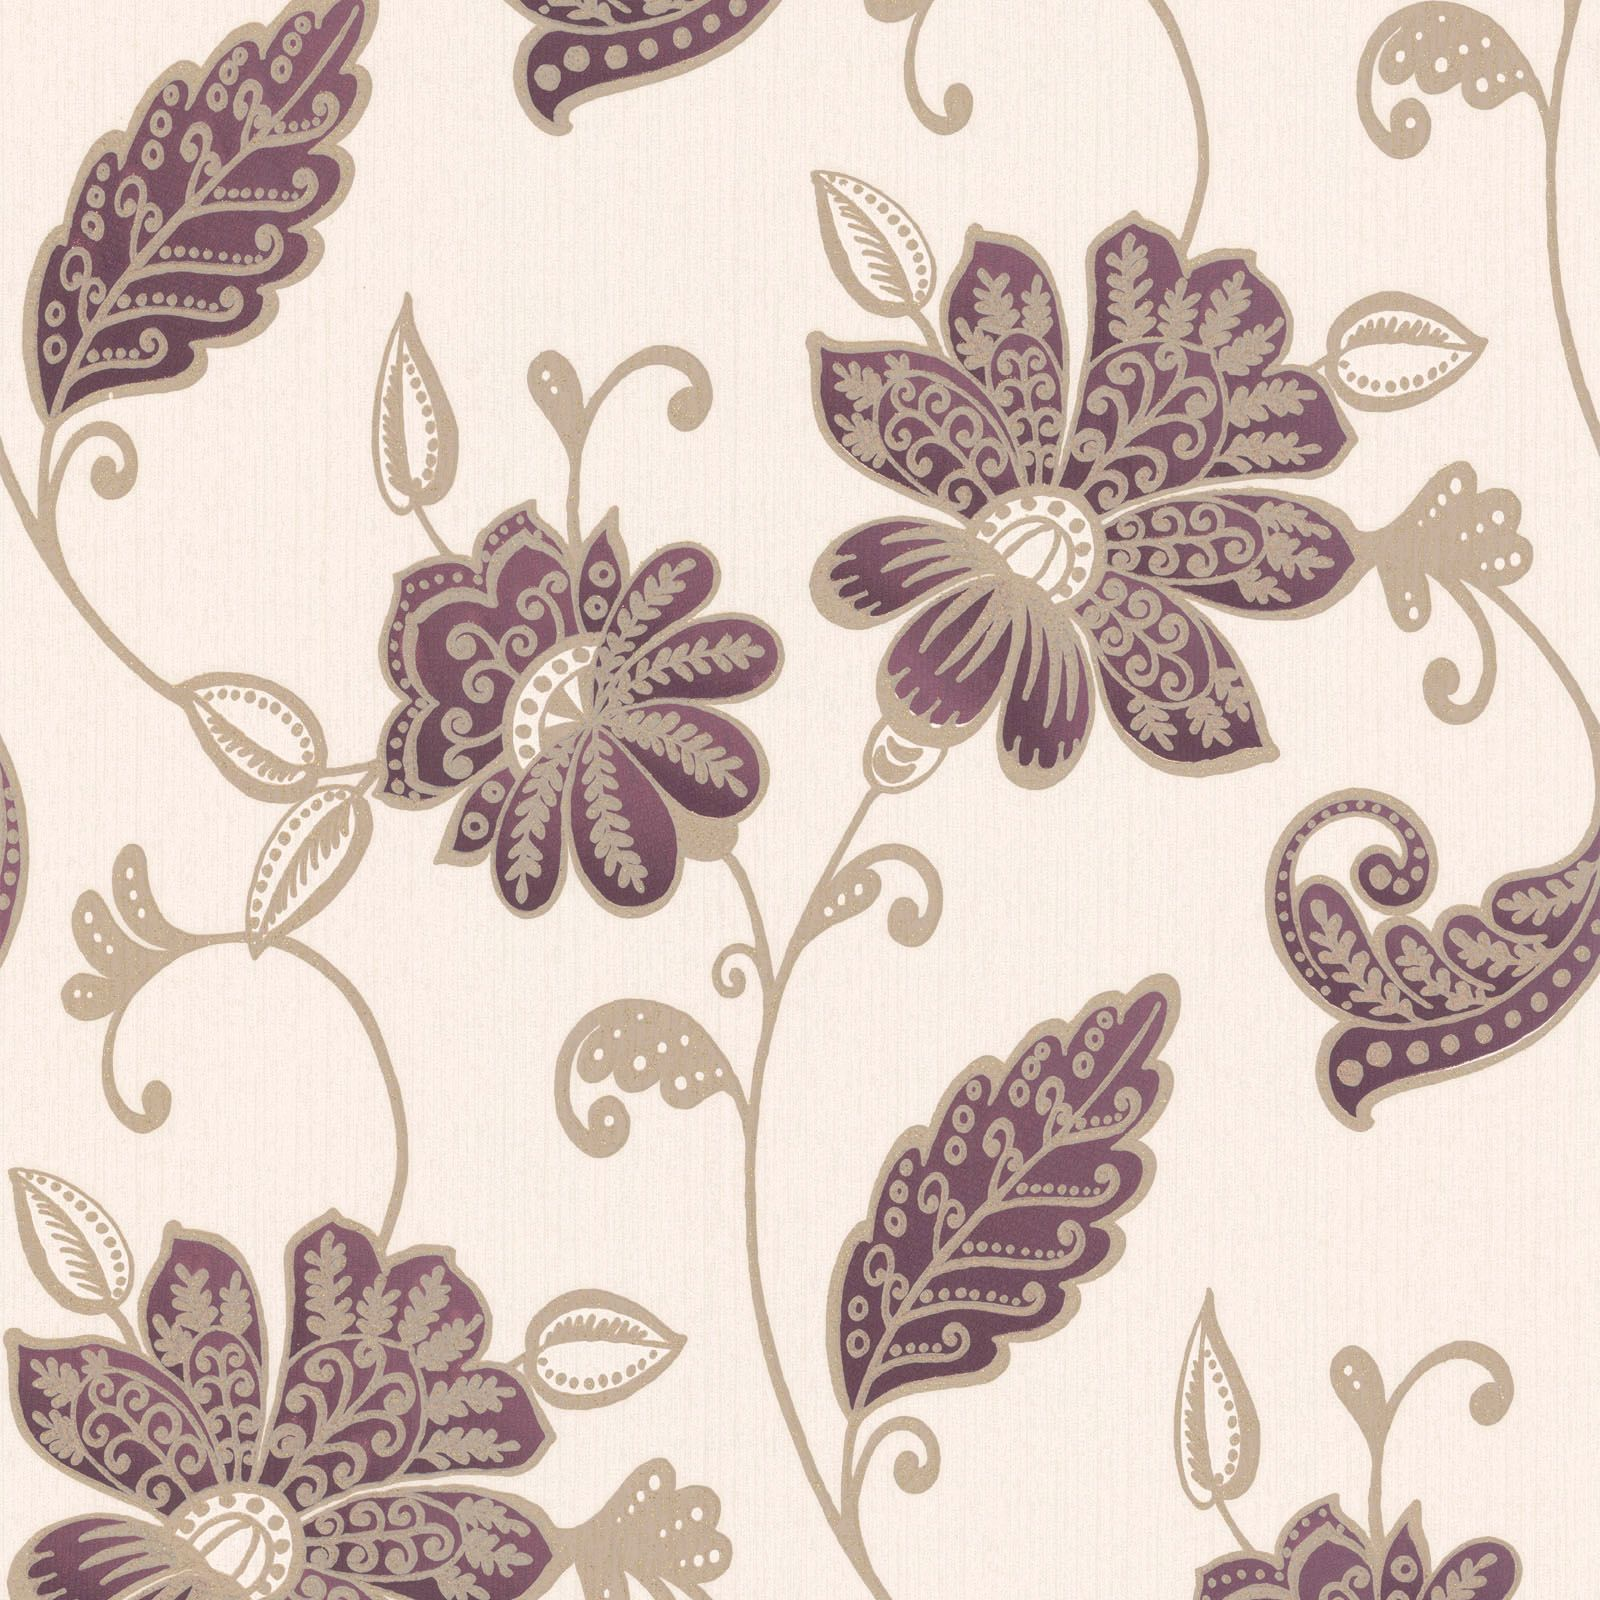 Home diy wallpaper illustration arthouse imagine fern plum motif vinyl - Find This Pin And More On Plum Inspired By Leahtmcneil